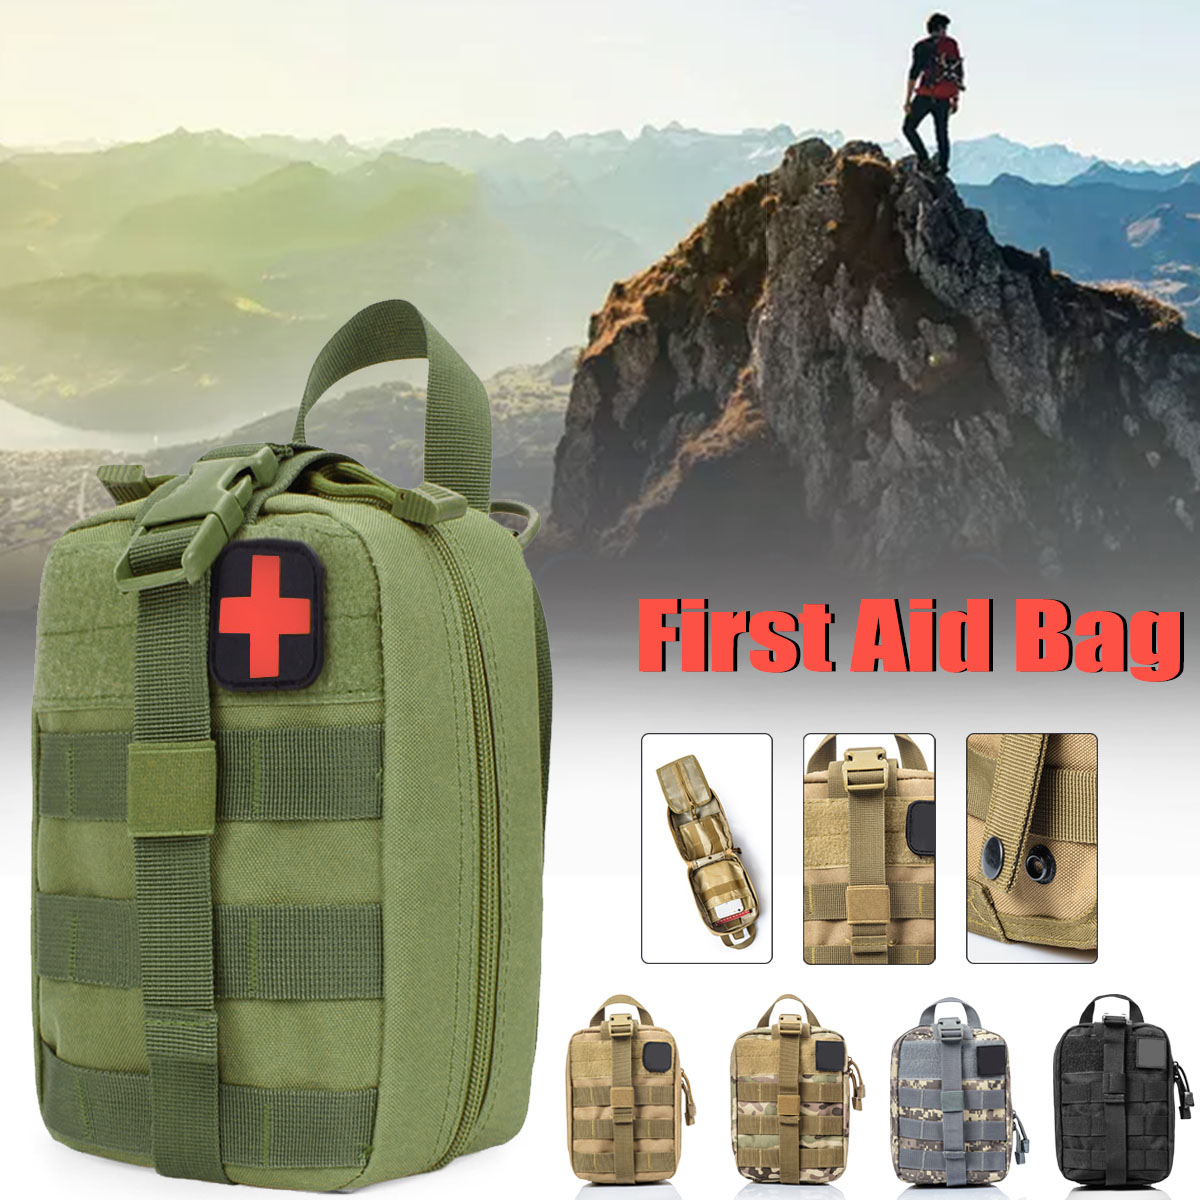 Nylon Outdoor Tactical Medical Bag Travel First Aid Kit Multifunctional Pack Camping Climbing Bag Emergency Case Survival 600D